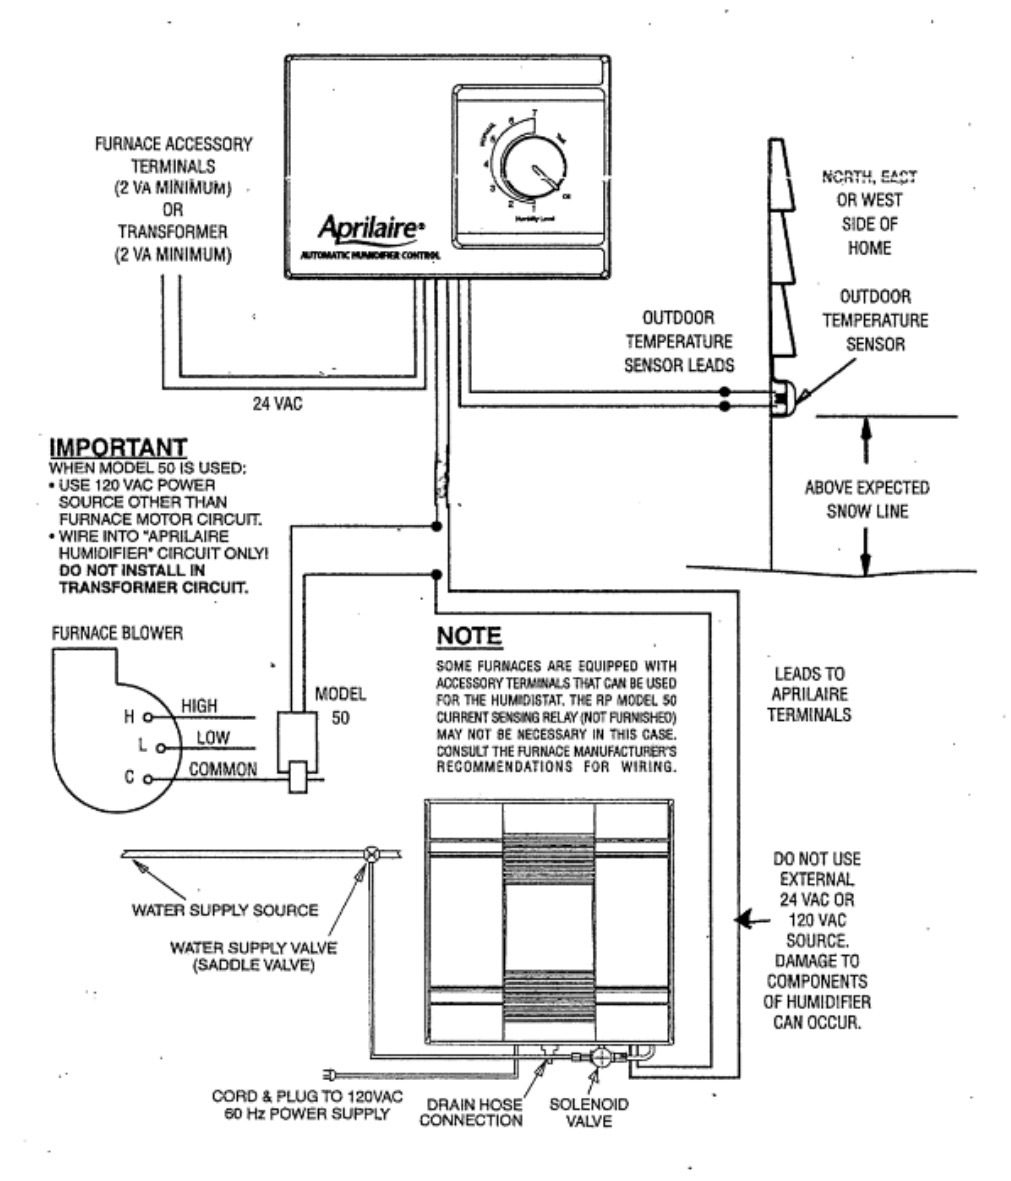 aprilaire humidifier wiring diagram Collection-aprilaire 600 wiring diagram Download Aprilaire Wiring Diagram 19 d 12-t